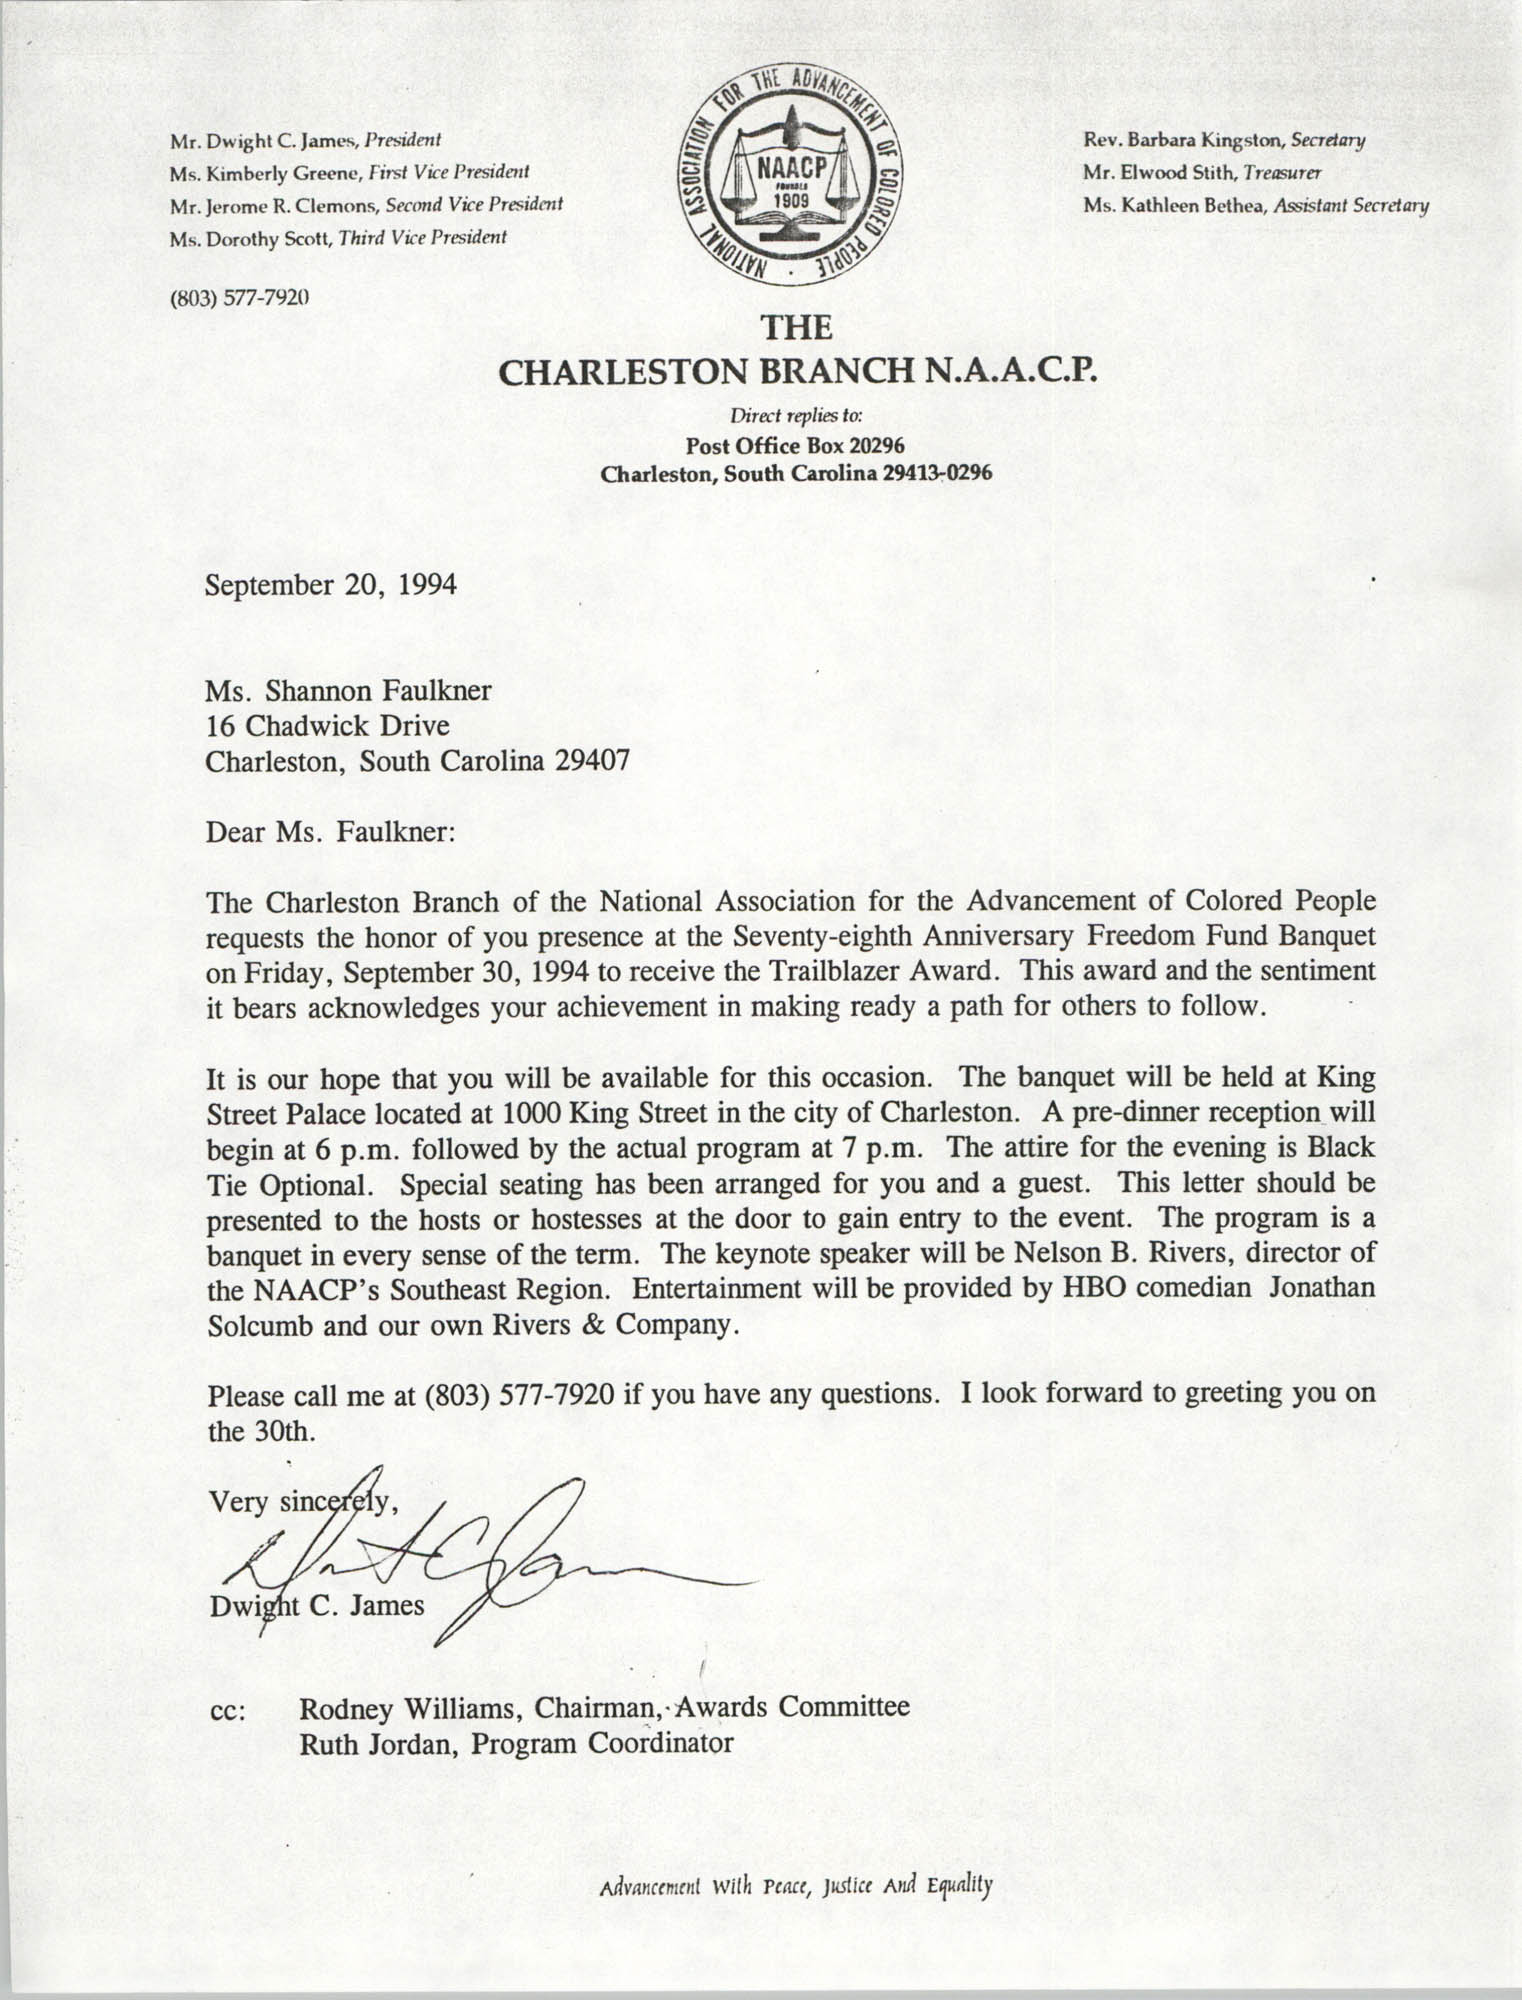 Letter from Dwight C. James to Shannon Faulkner, September 20, 1994